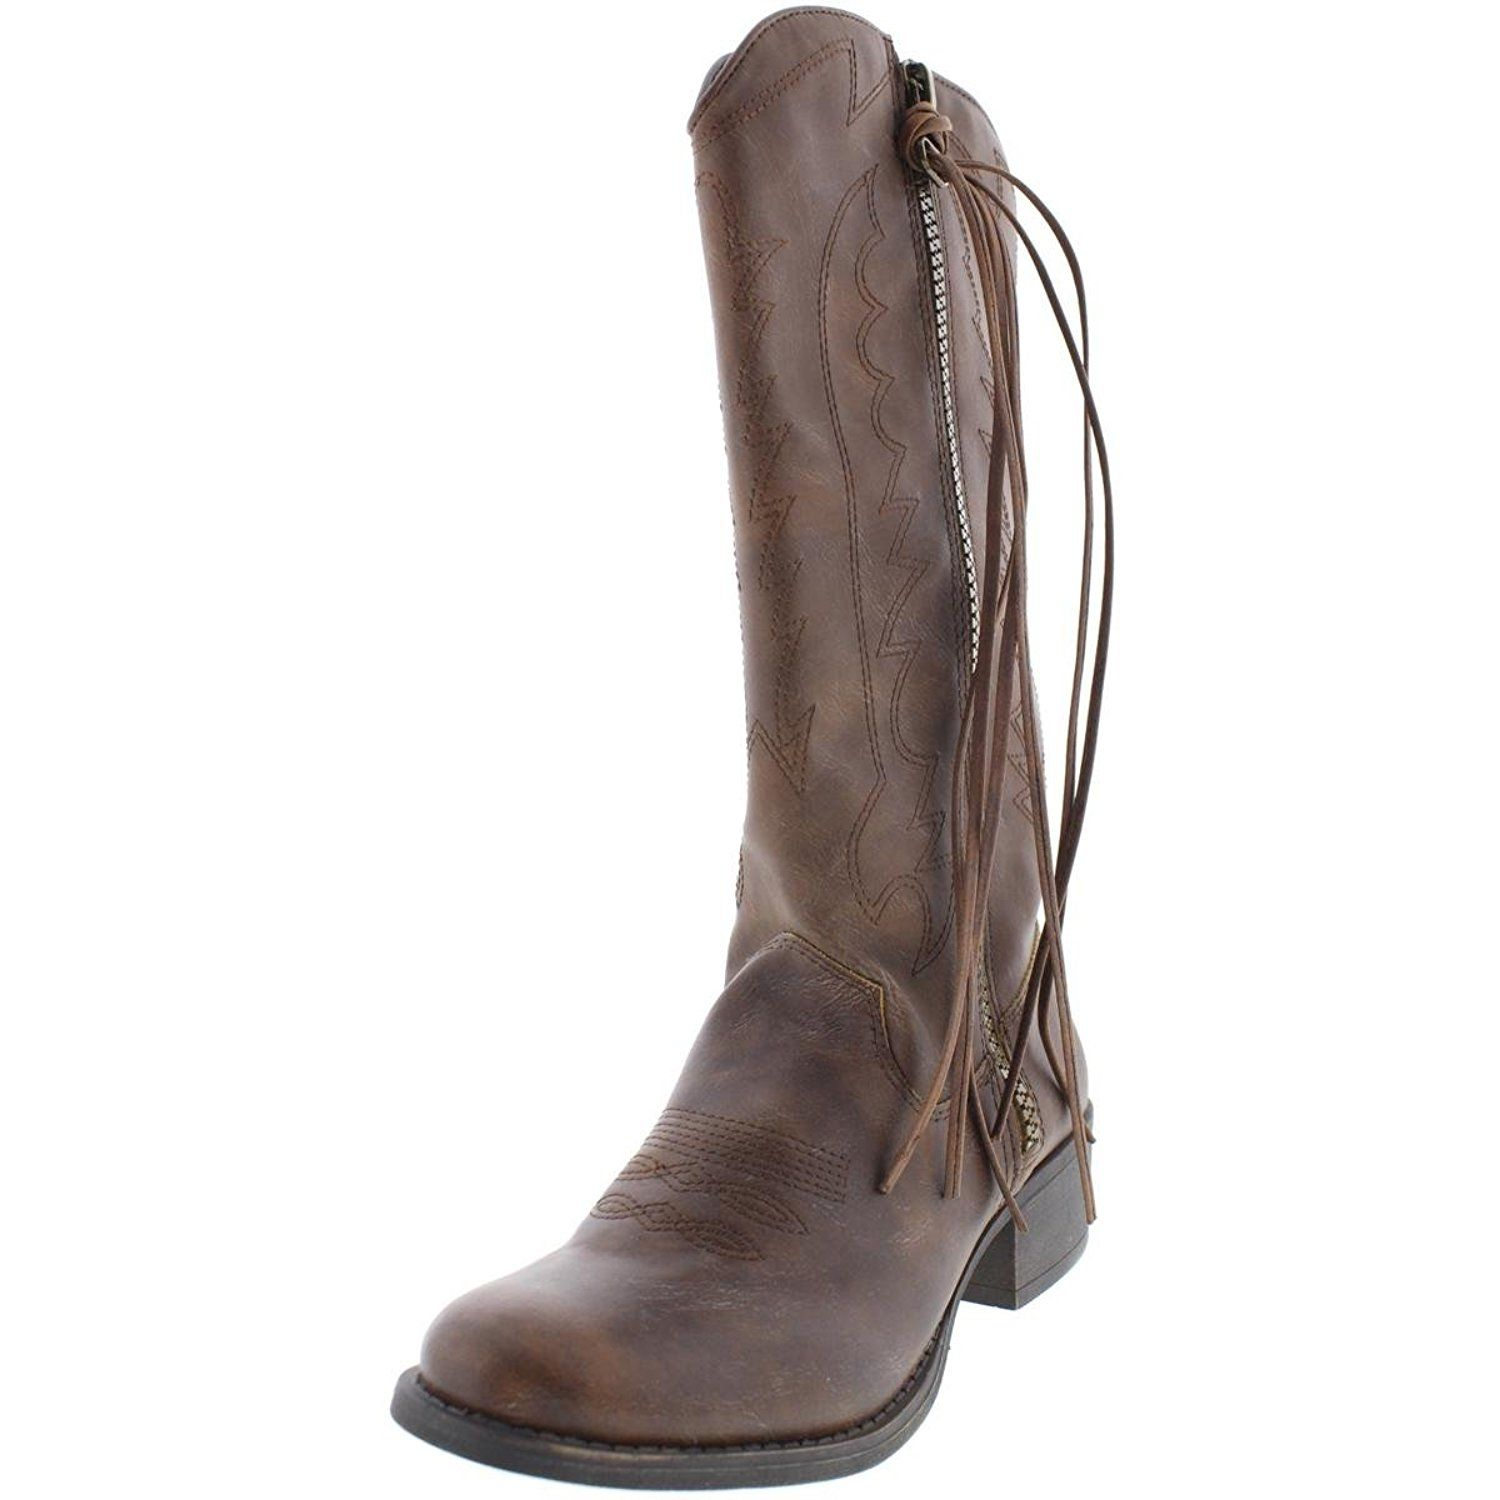 Madden Girl Womens Durantt Faux Leather Tassel Cowboy, Western Boots * For more information, visit image link.